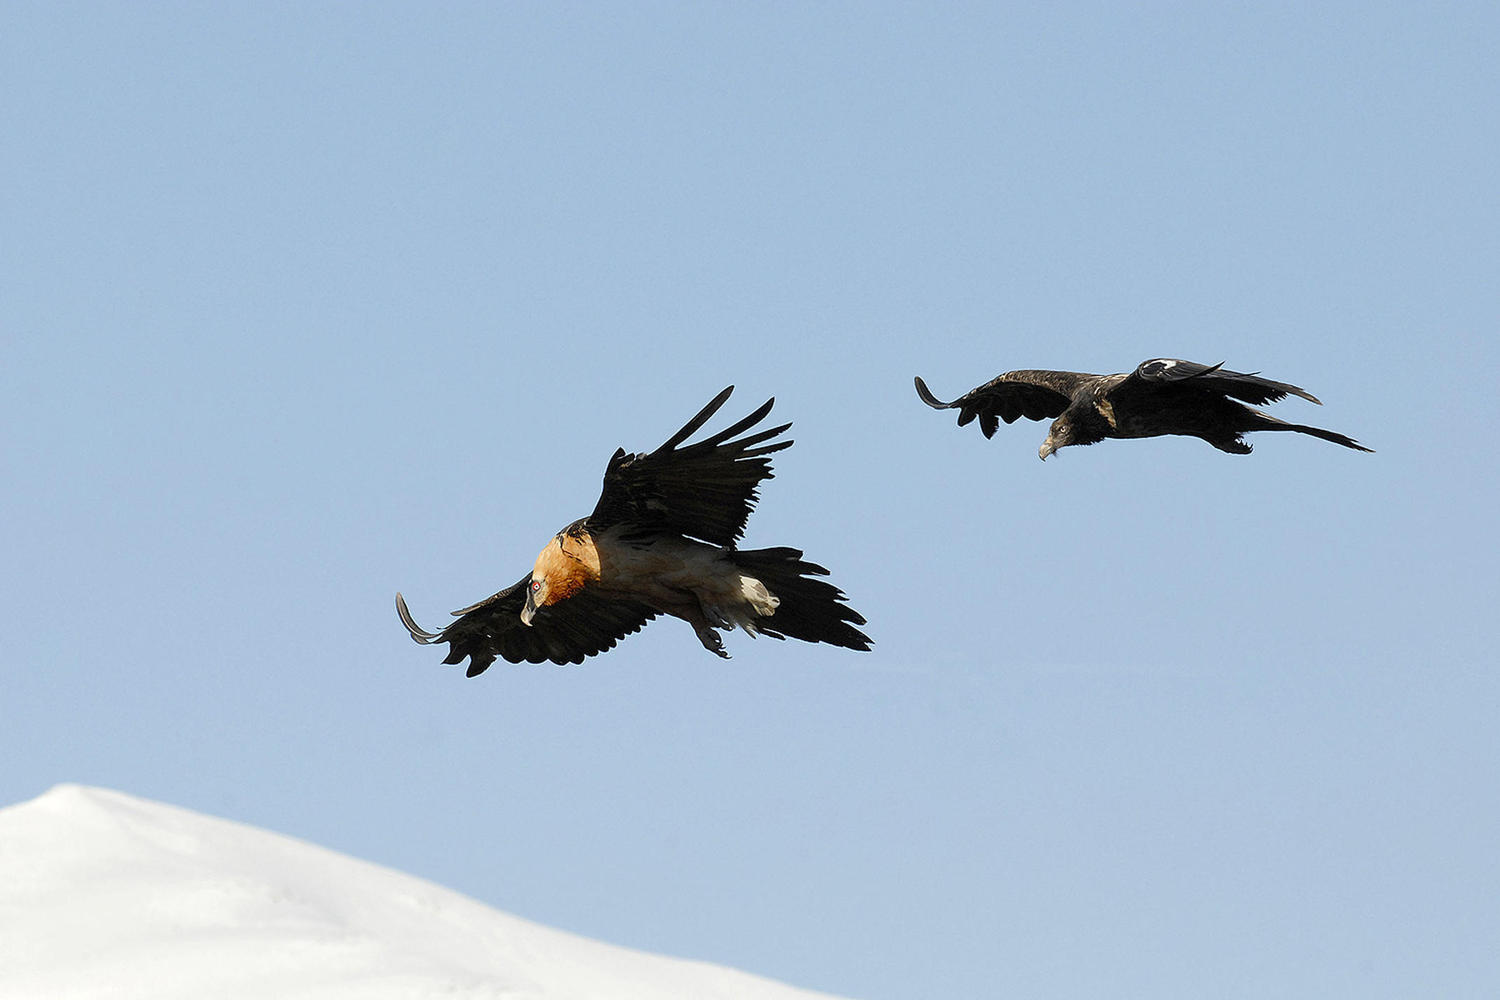 Bearded vultures flying above the snowy peaks.